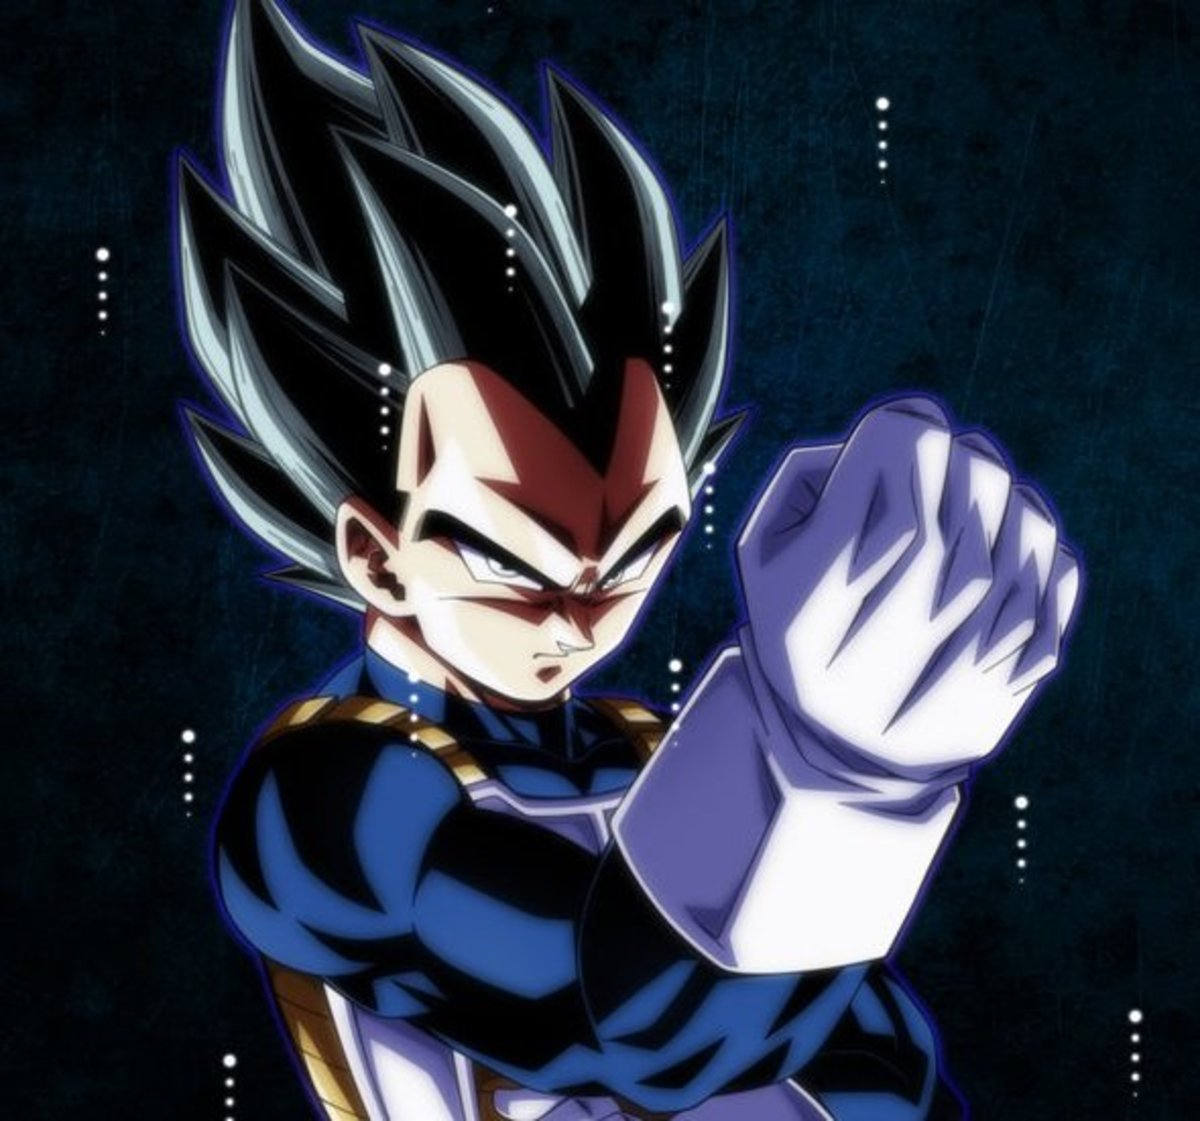 Vegeta in base form